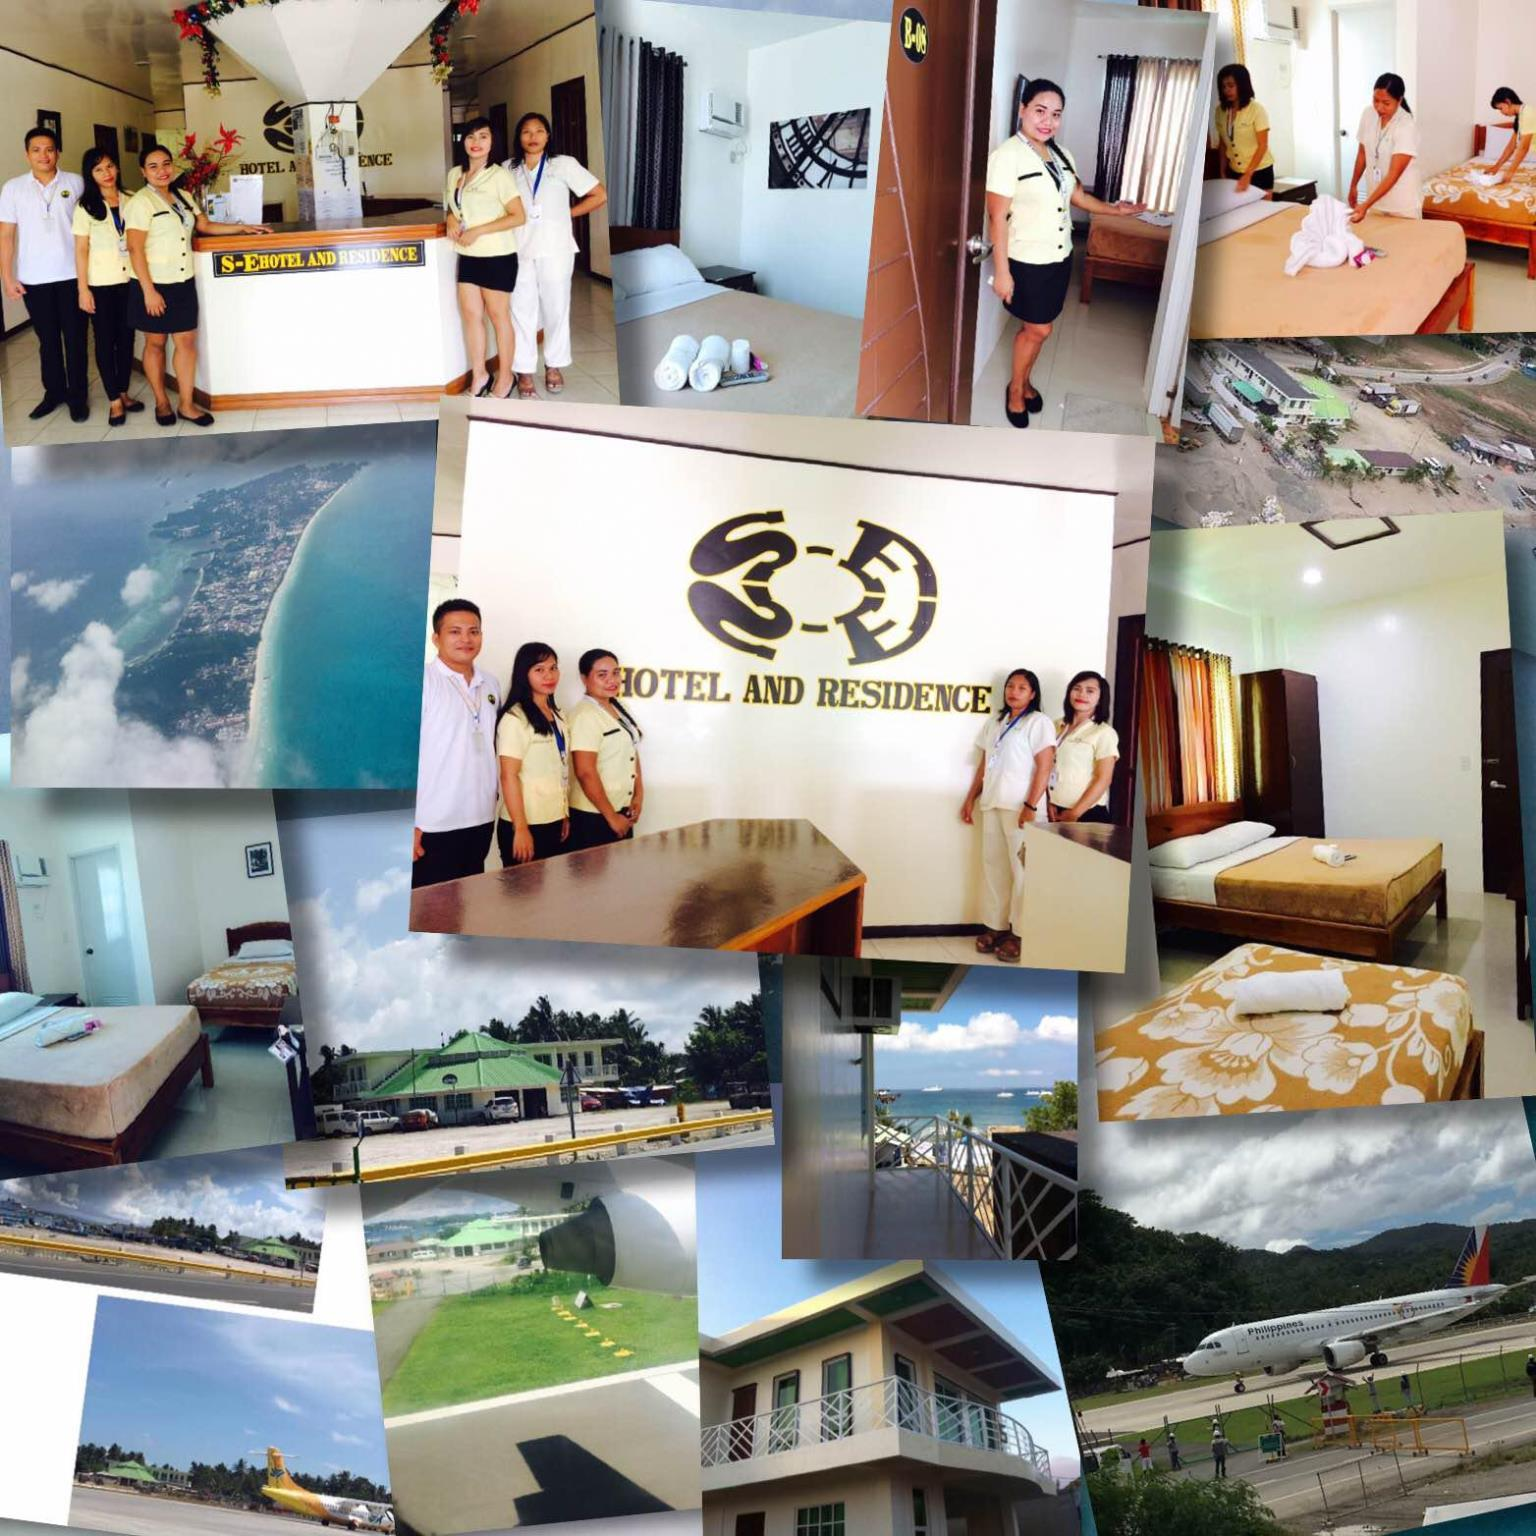 S E Hotel And Residence